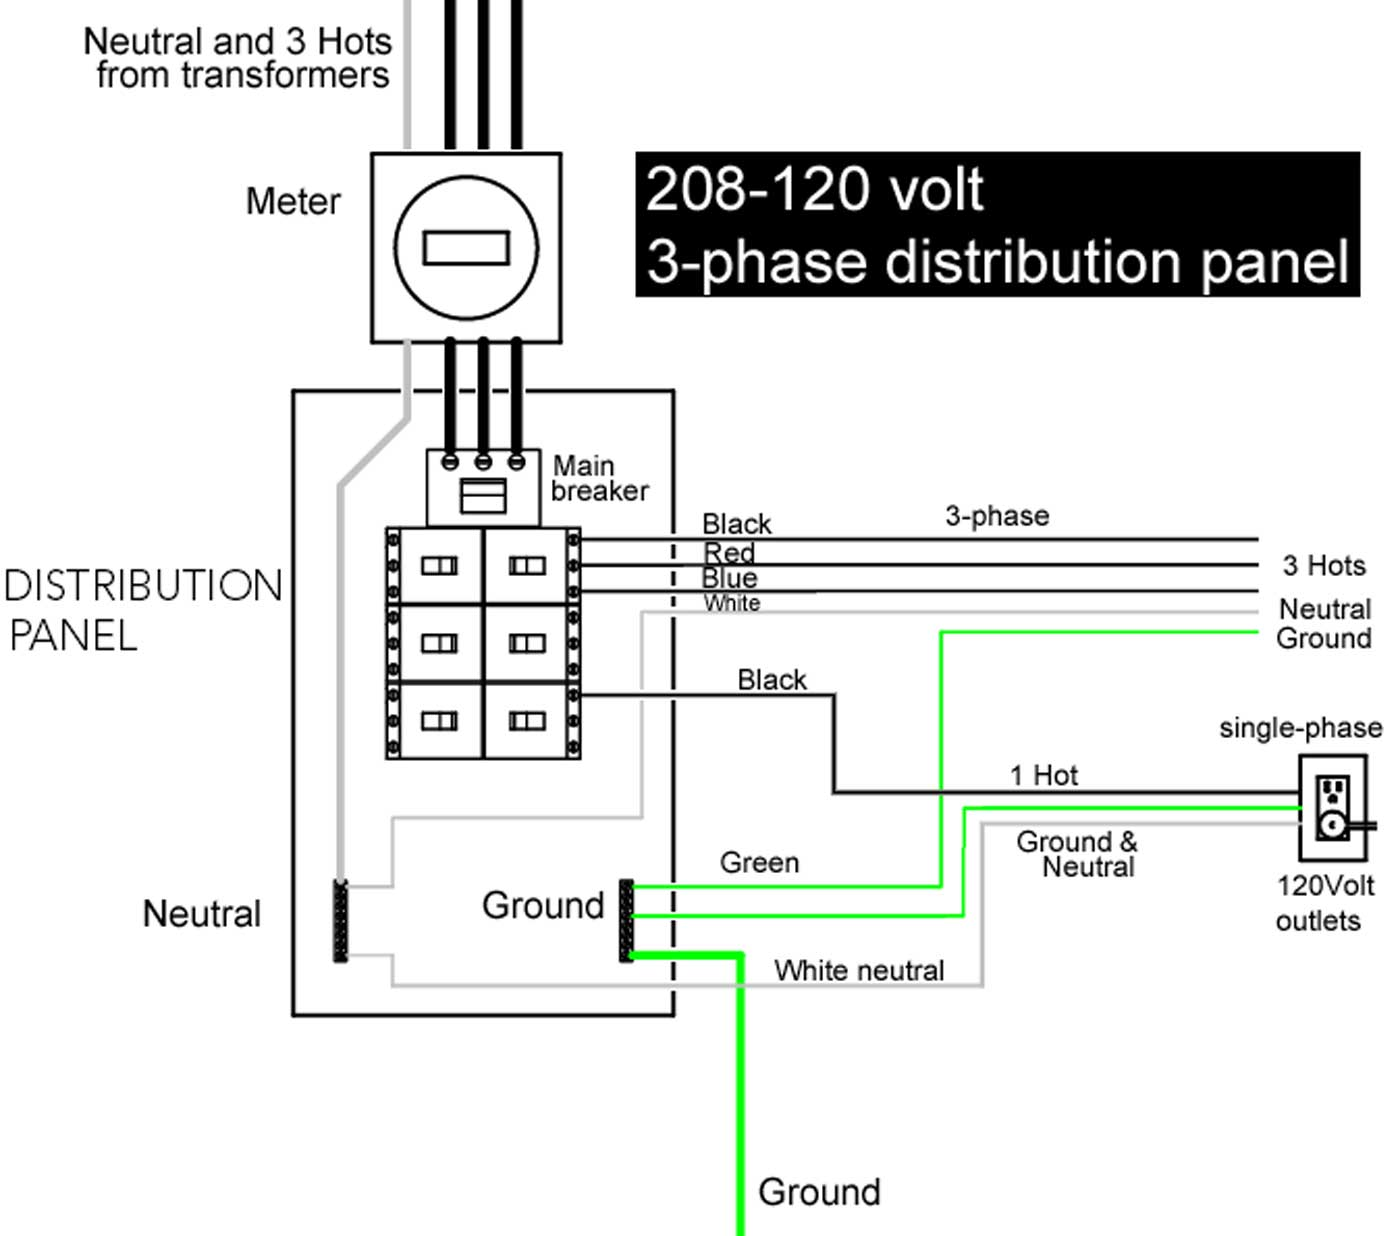 Lighting Ballast Wiring Diagram 208 Not Lossing Universal Todays Rh 5 18 10 1813weddingbarn Com Emergency